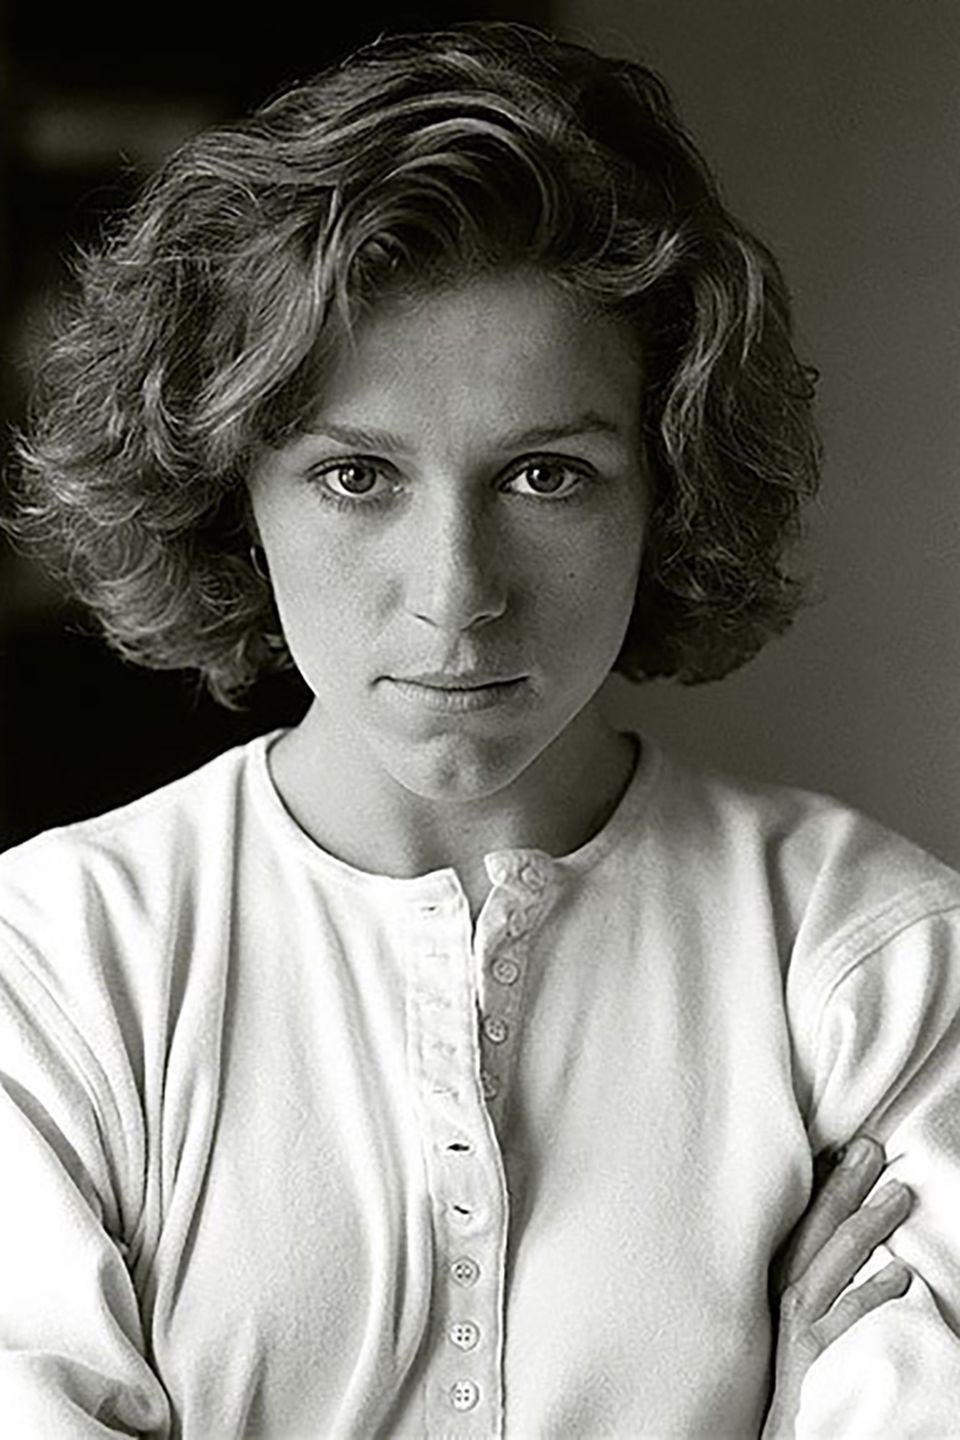 <p>Frances McDormand garnered a lot of attention for her first major role in the 1984 film <em>Blood Simple</em>. But she gained much more than just an award-winning career from the film—McDormand and her husband of 35 years met on the set and married that same year.</p>